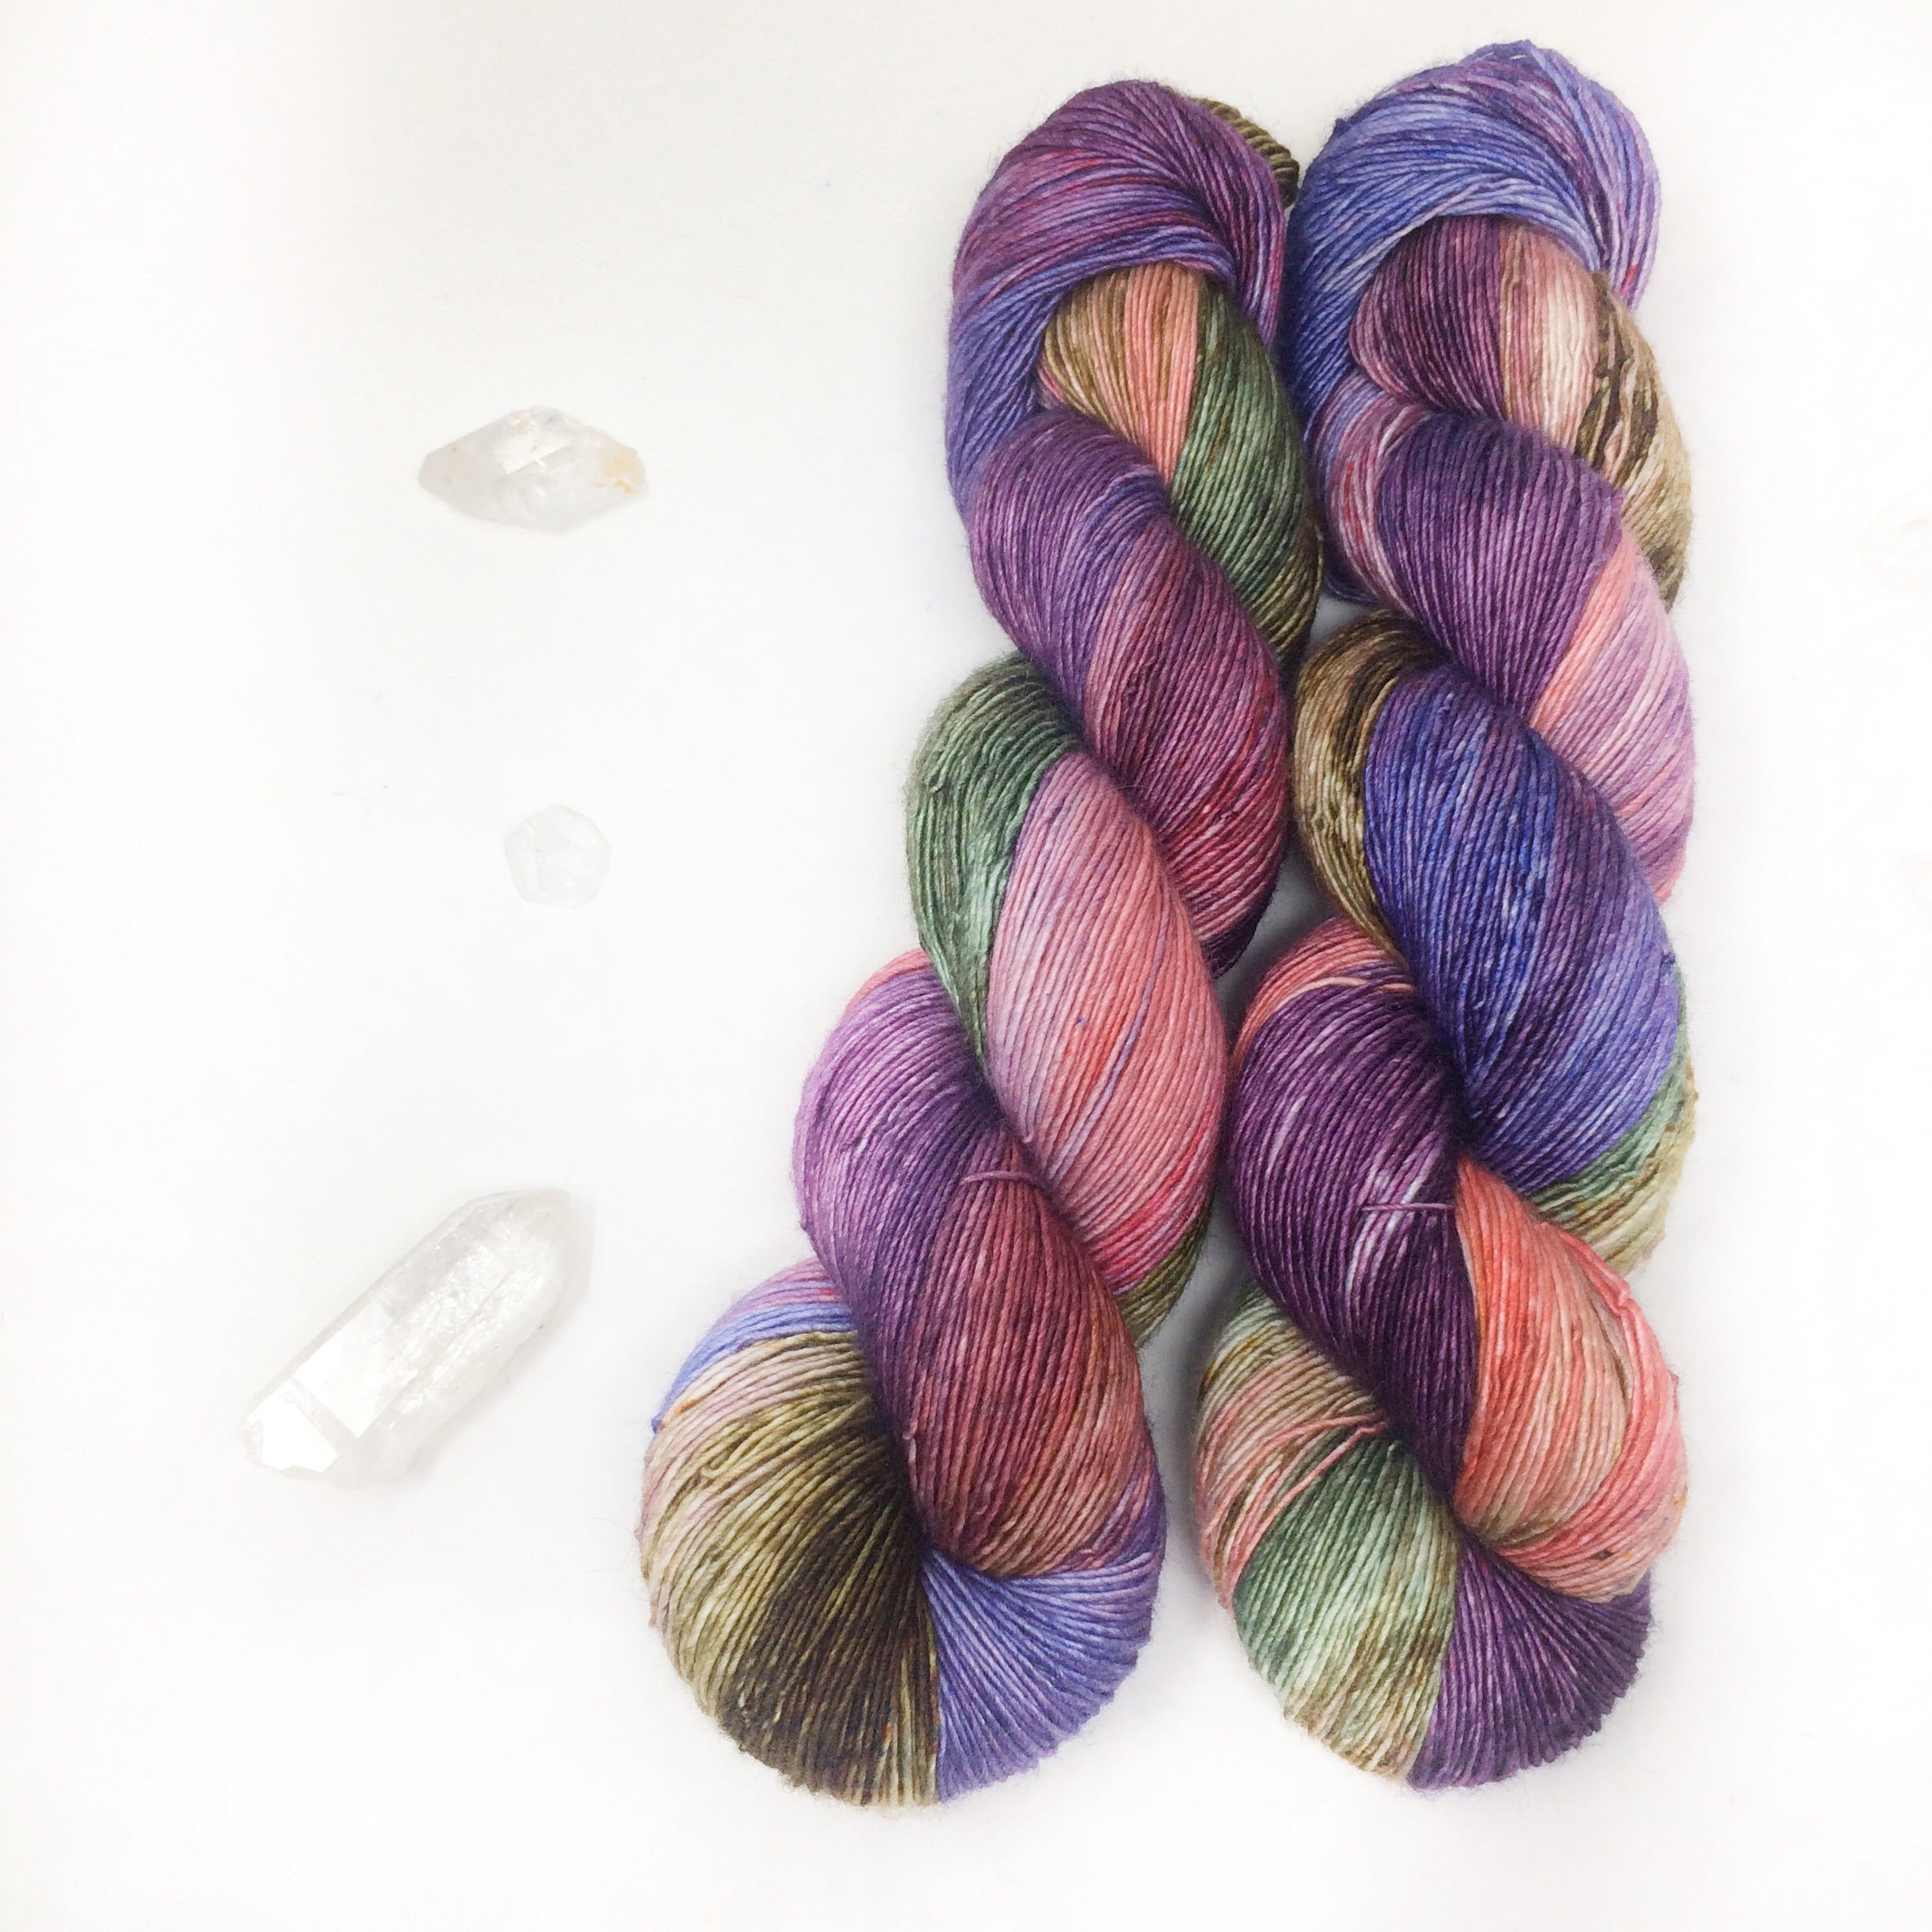 Garden Party - 70/30 merino silk single ply